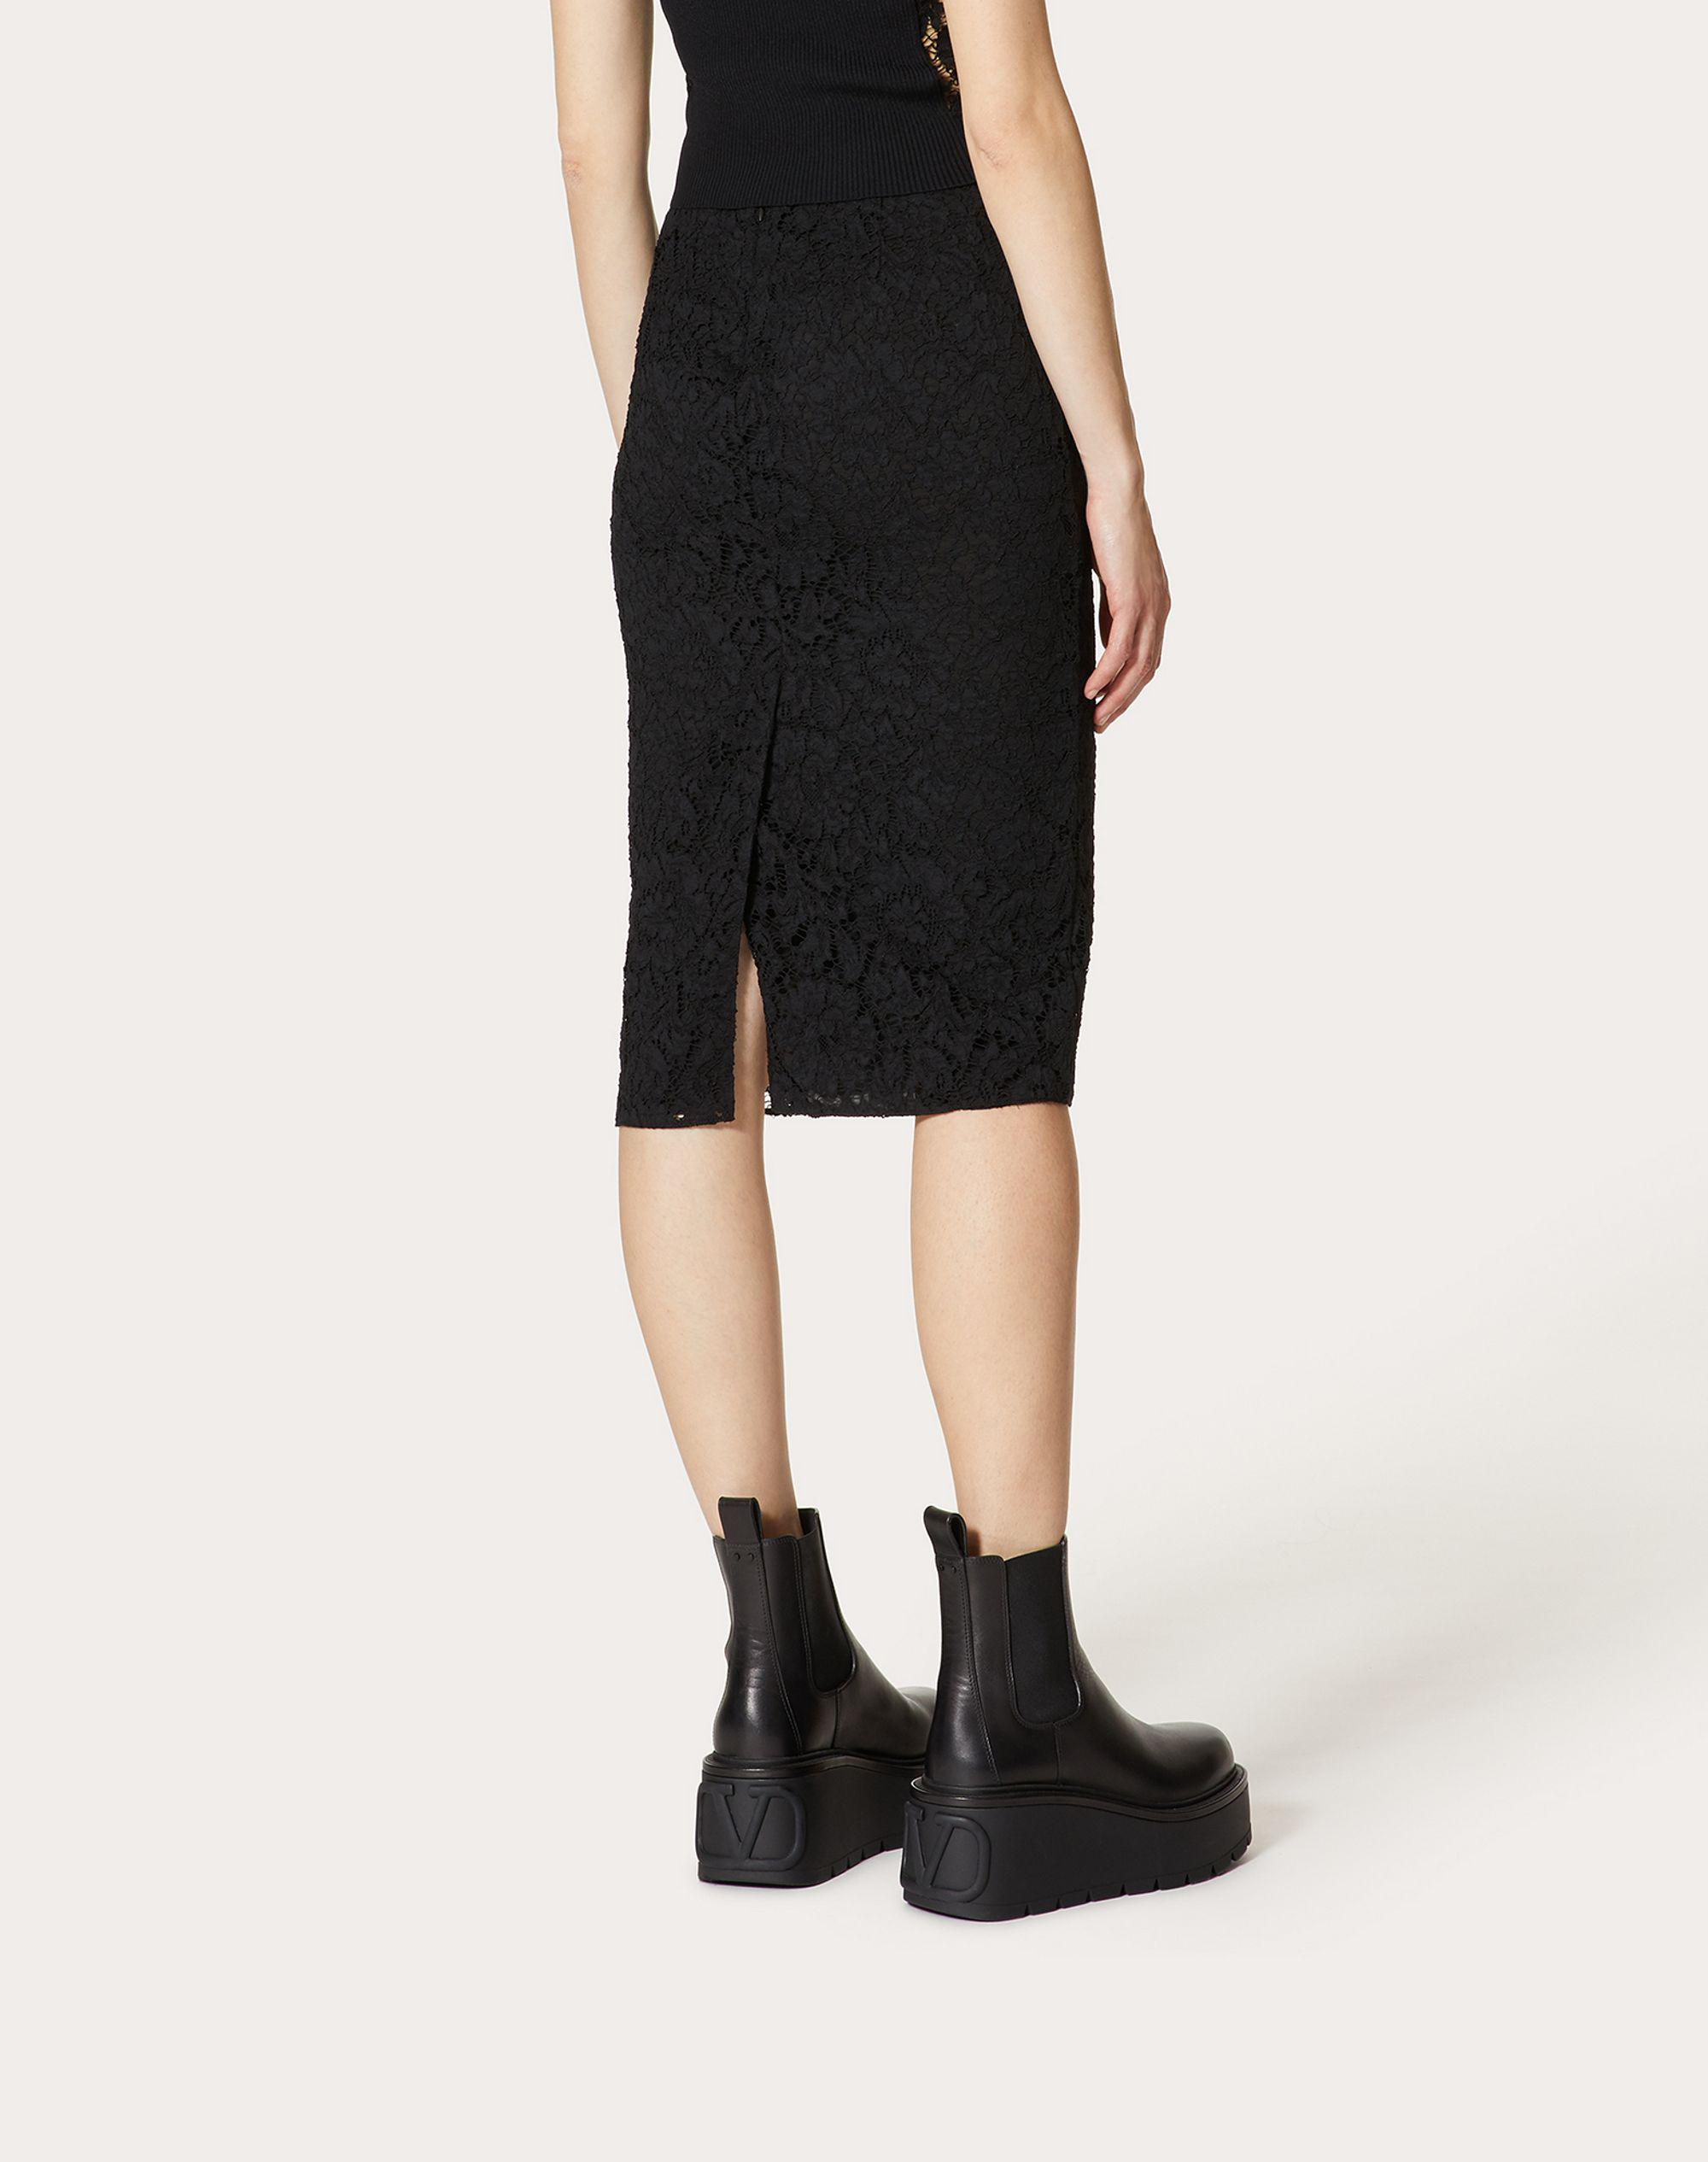 STRETCH HEAVY LACE PENCIL SKIRT 2